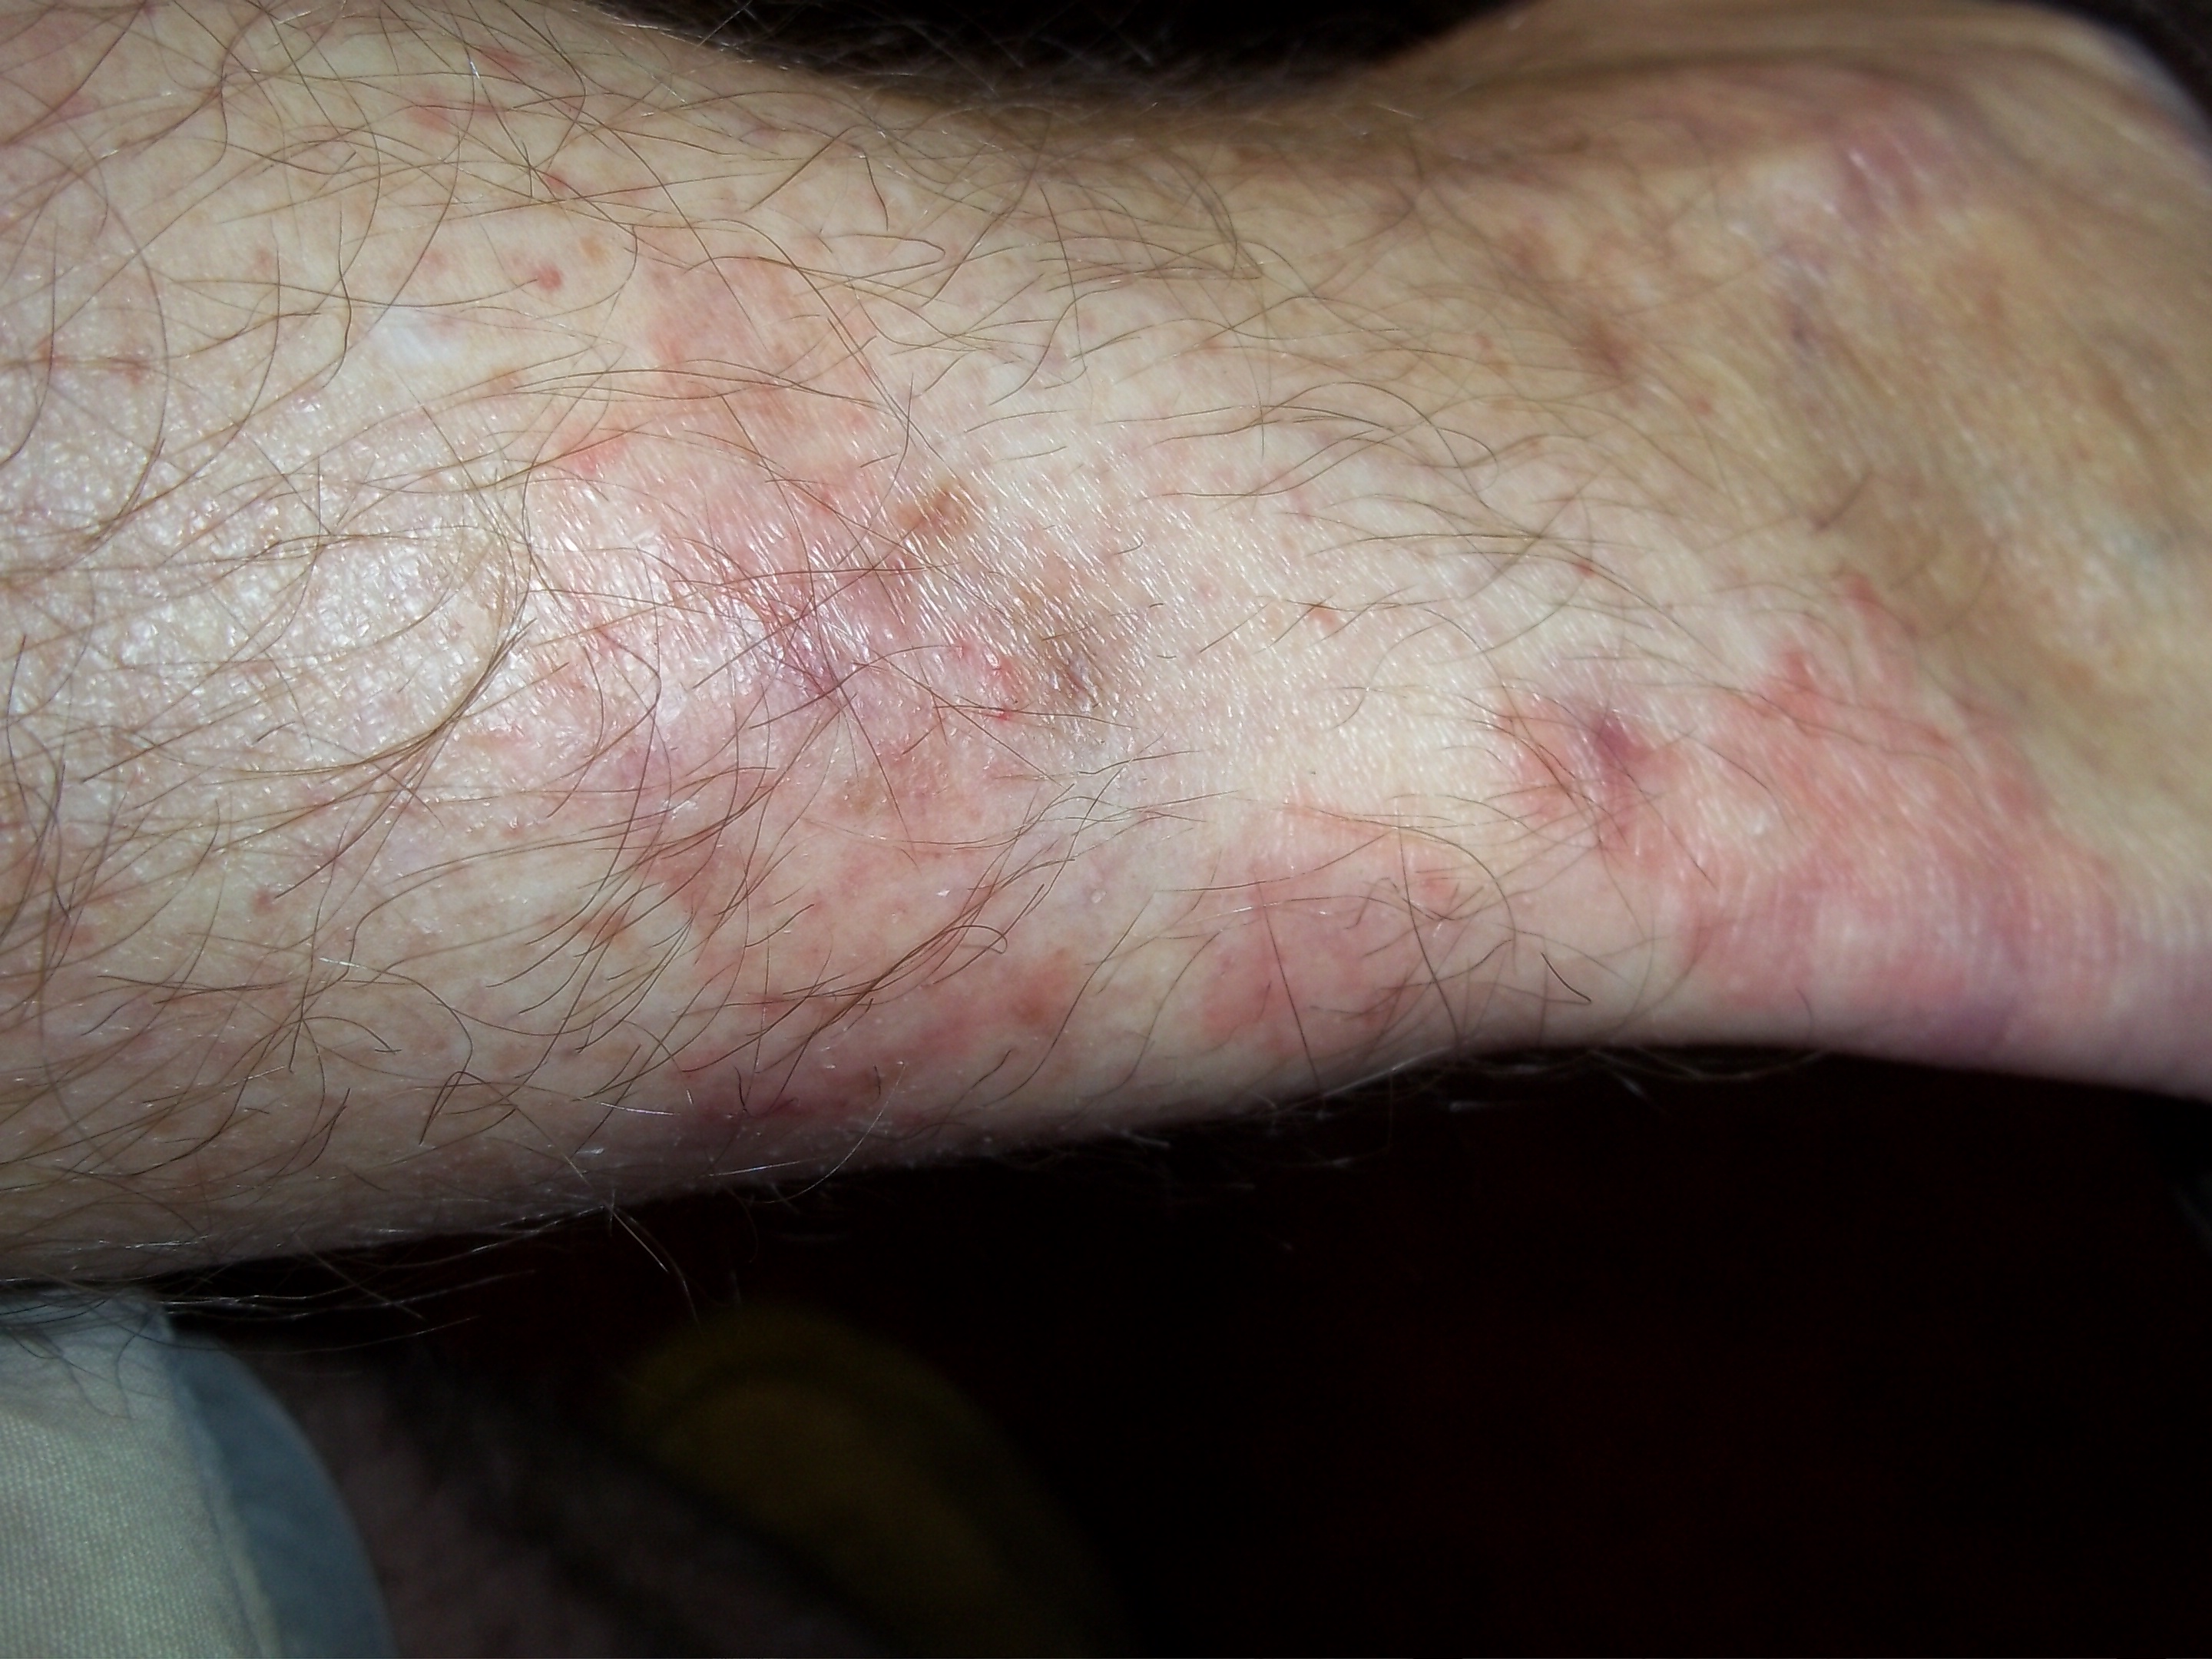 Ankle Rash Images - Reverse Search